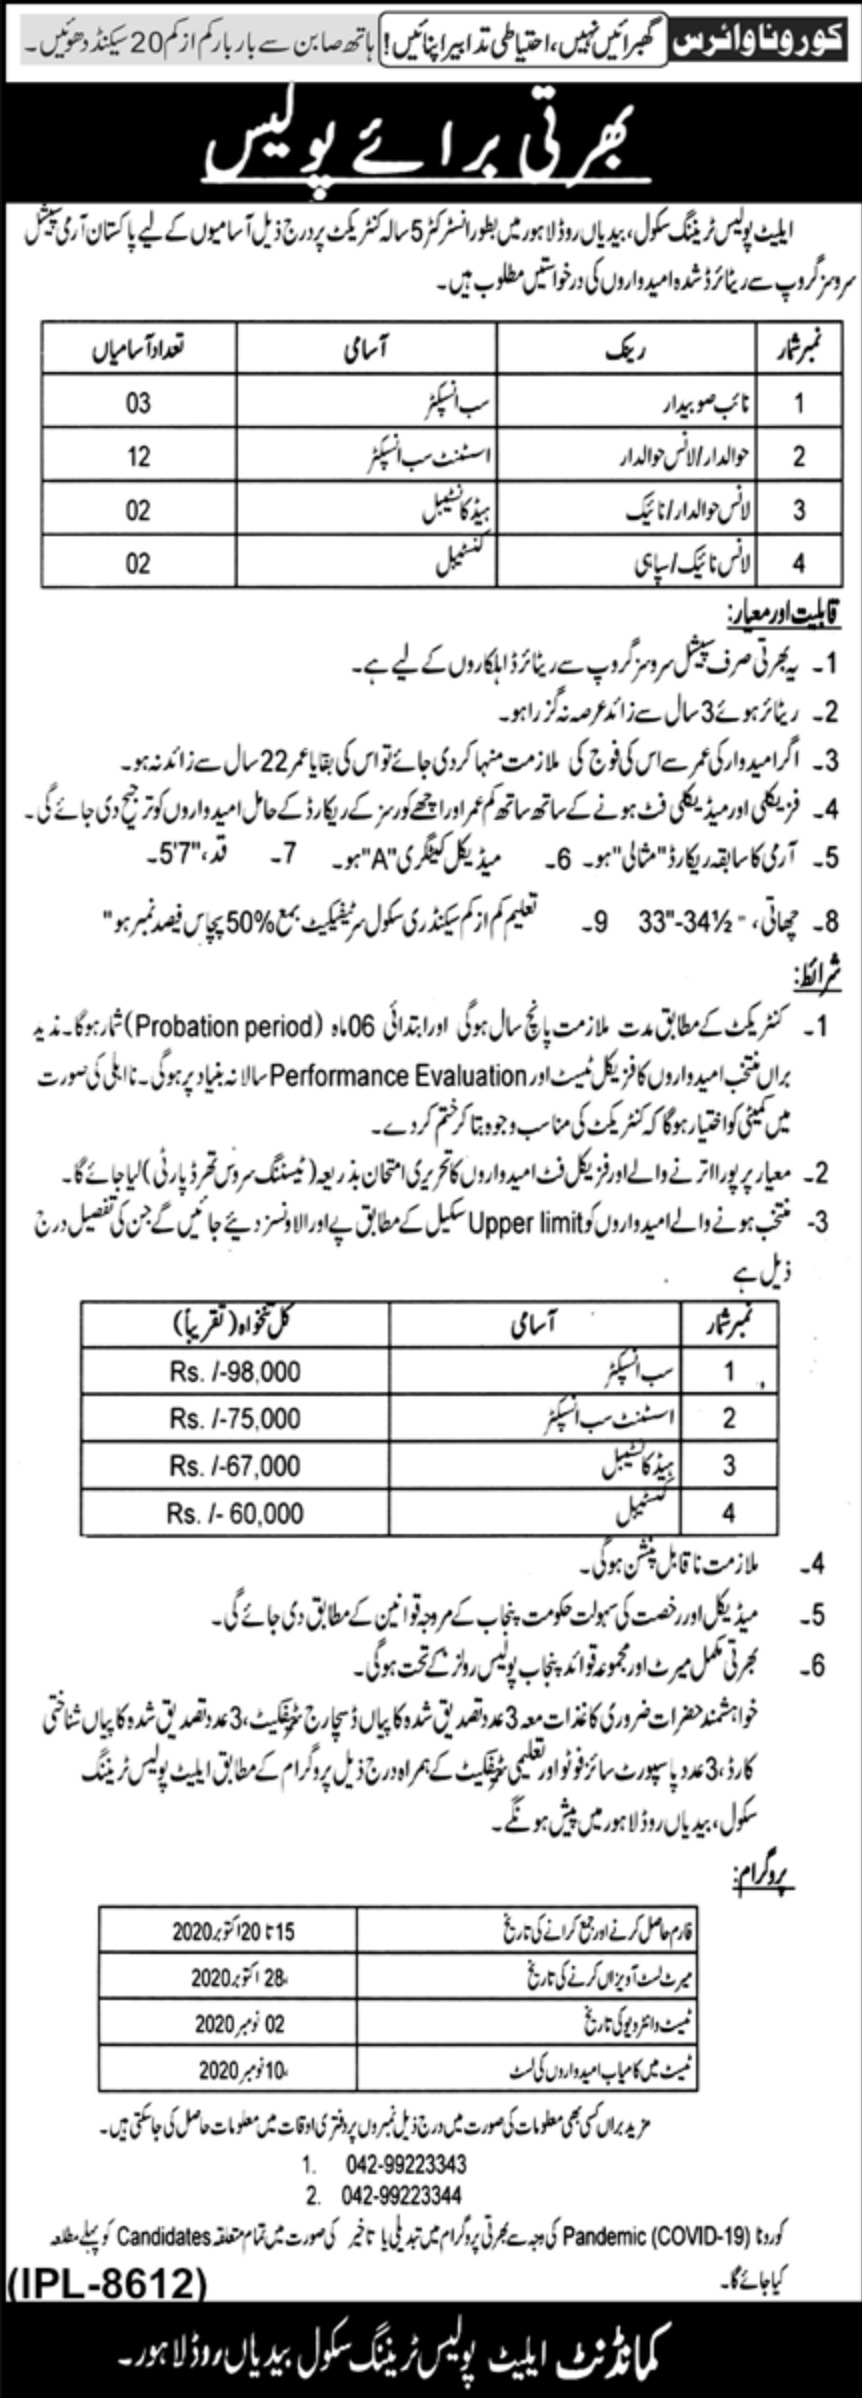 Punjab Police Jobs October 2020 For Sub Inspector, Assistant Sub Inspector, Head Constable, Constable